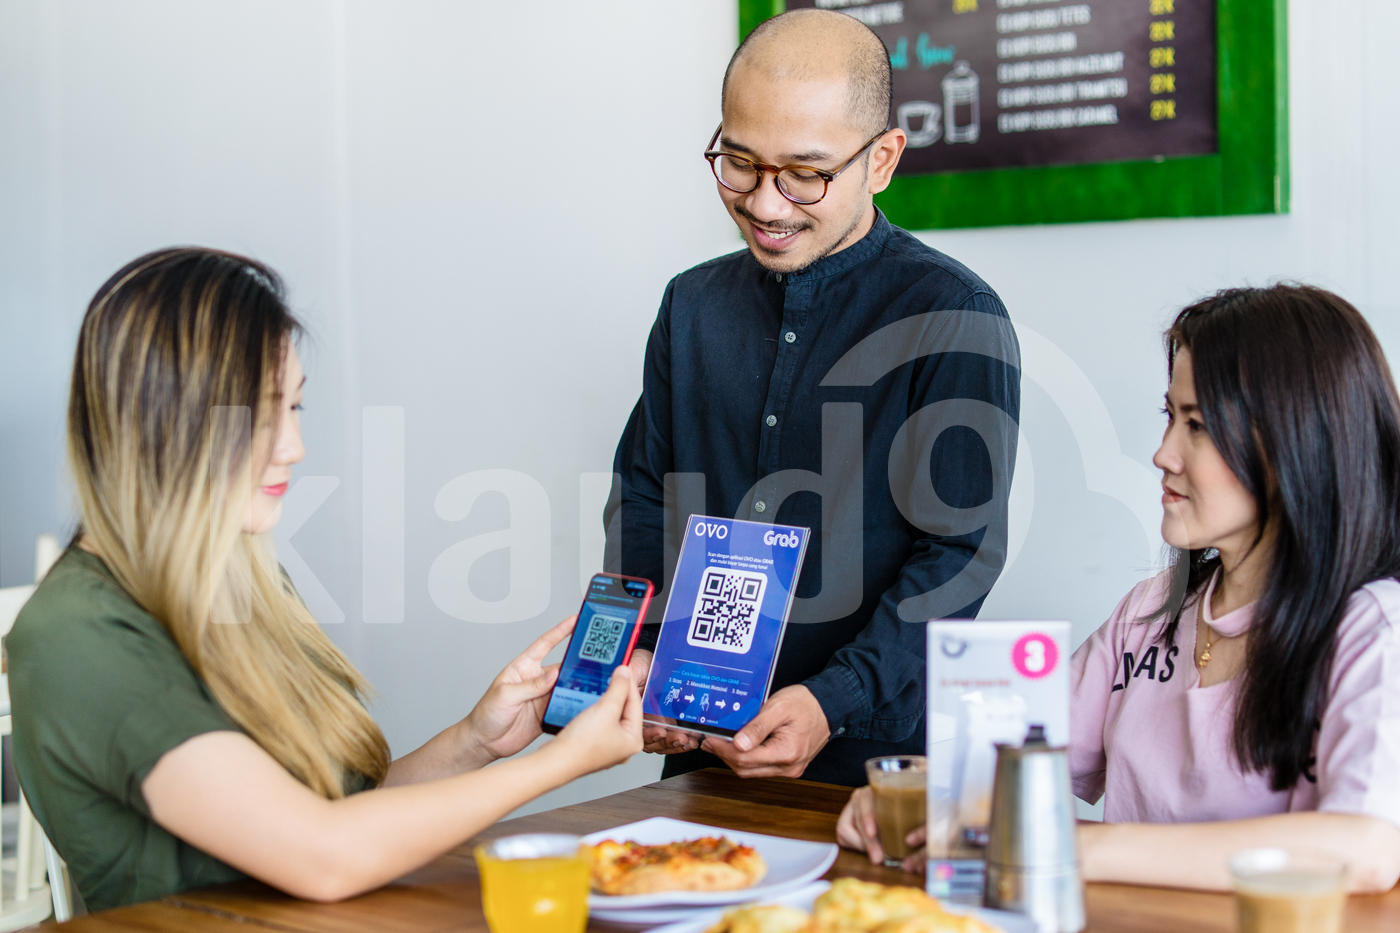 Asian Woman scanning QR code with smartphone to make payment